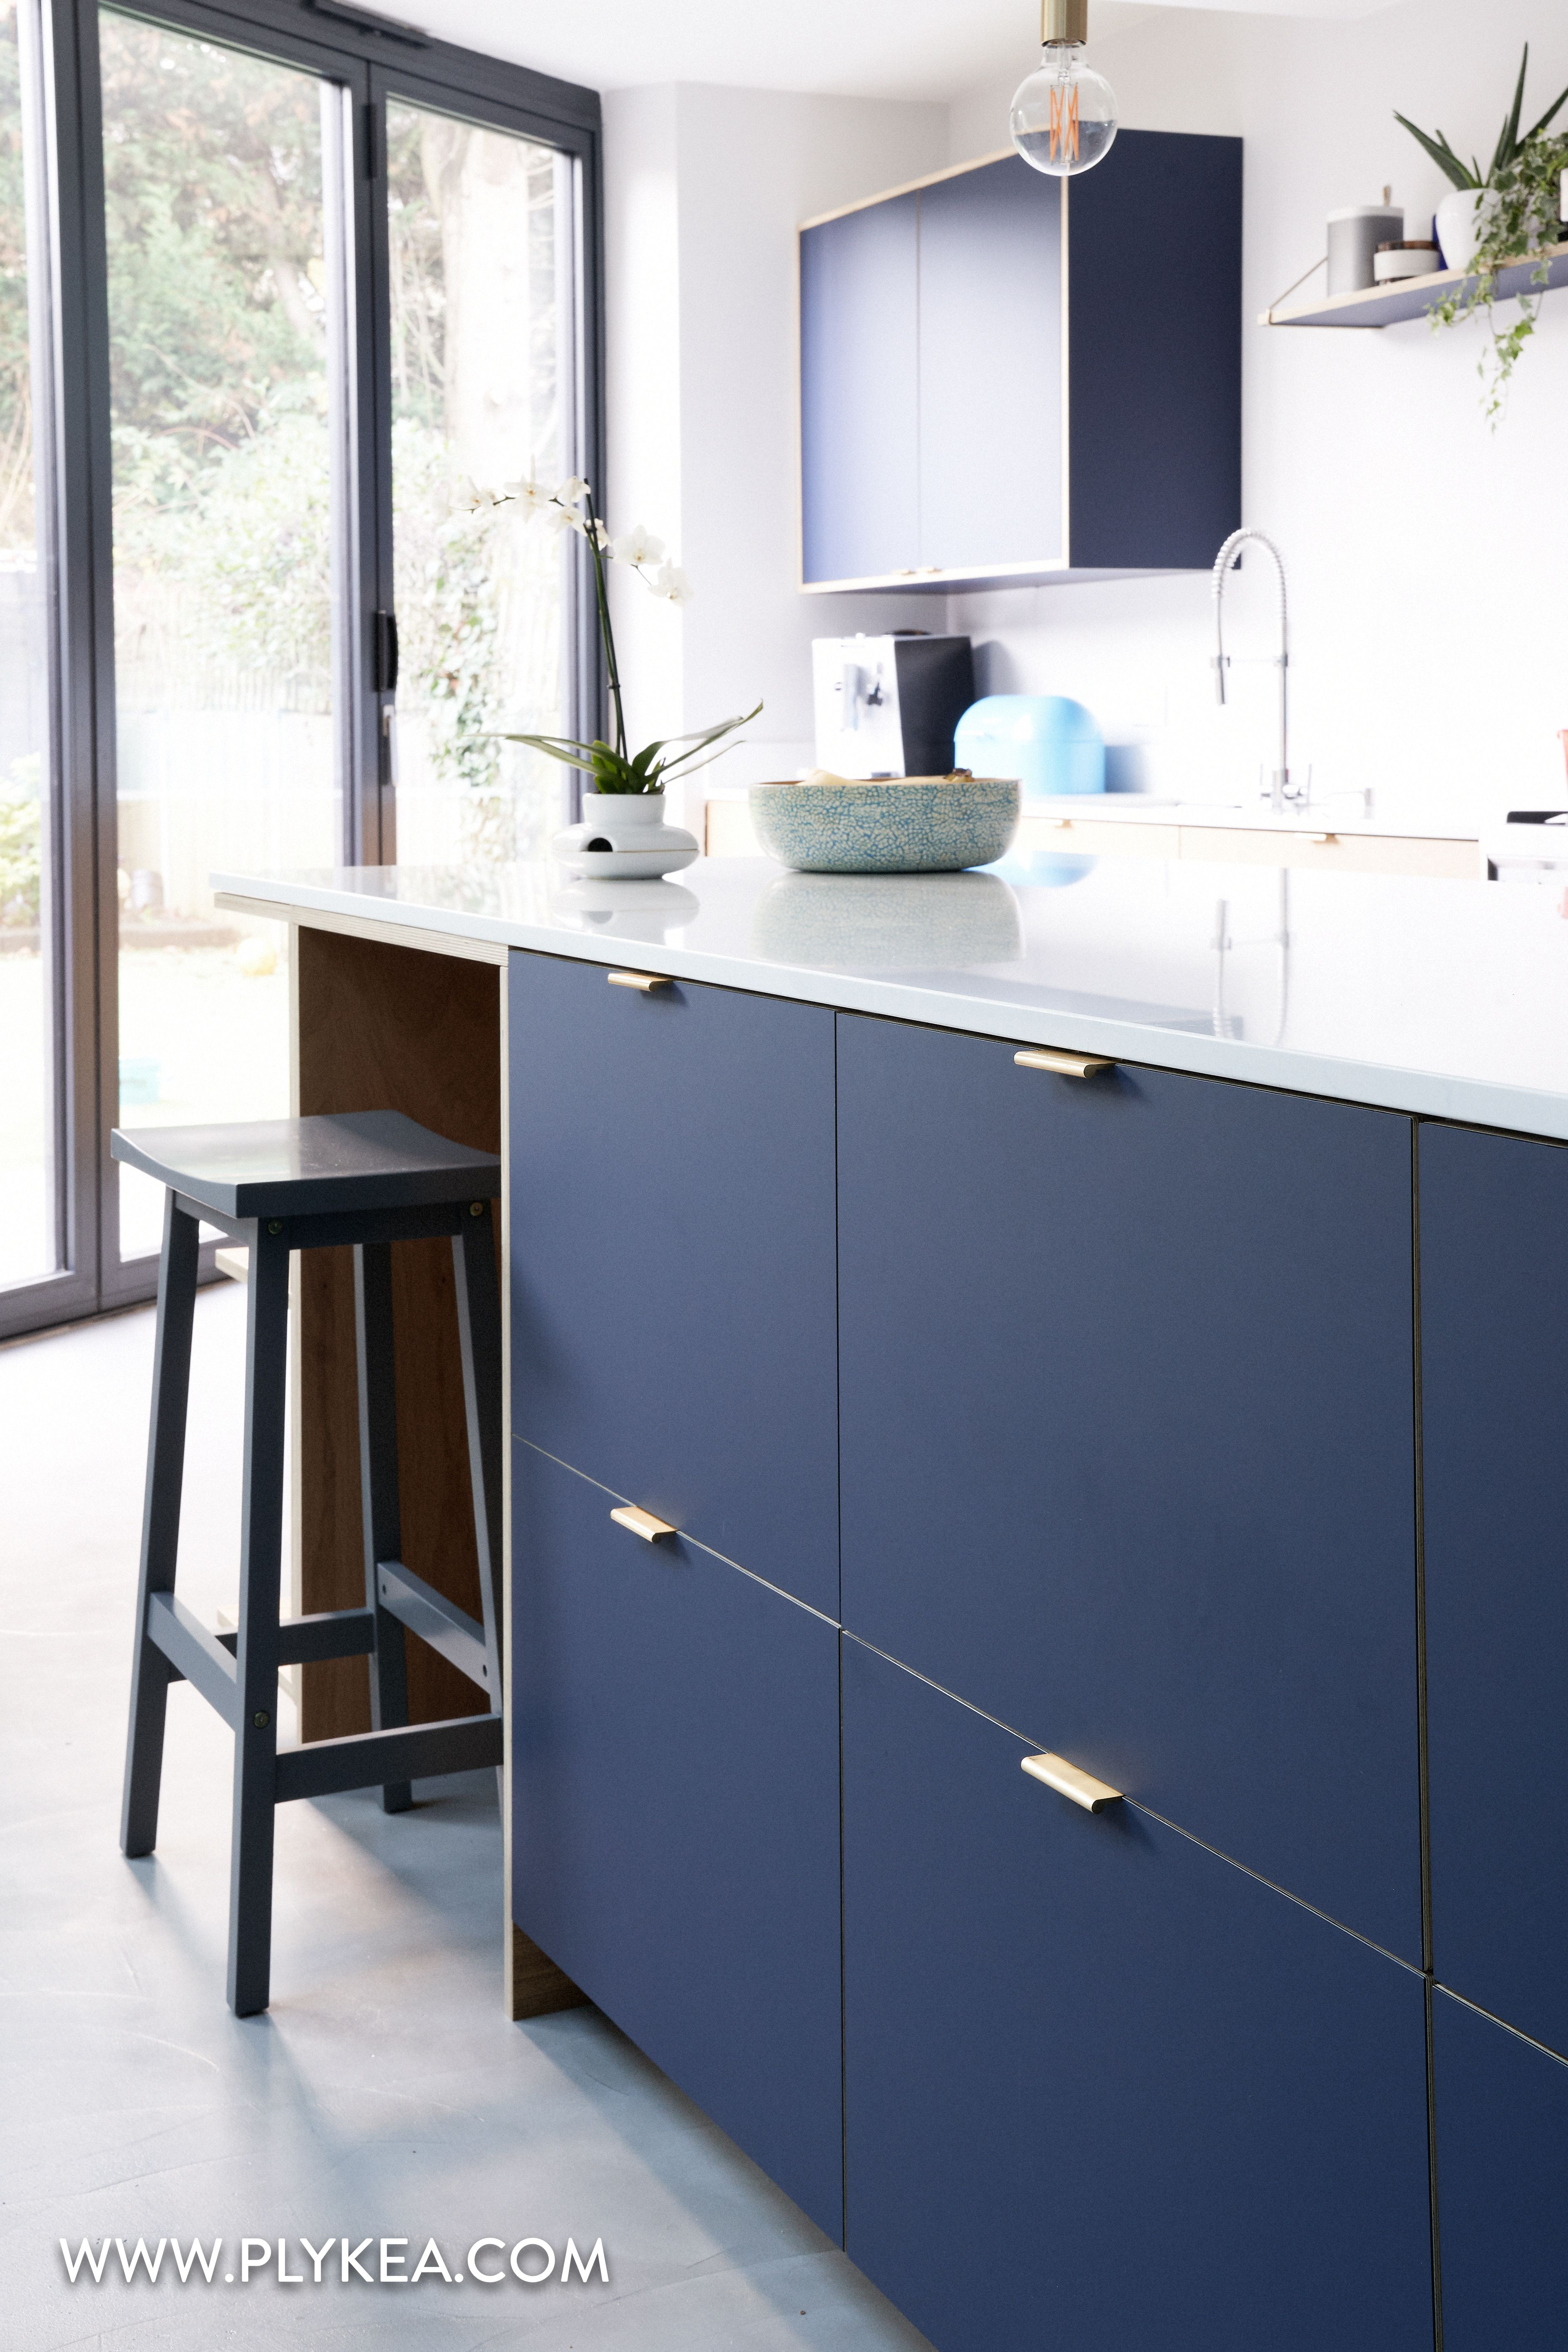 Blu Fez Fenix And Oak Are Combined Along With Our Brass Edge Pull